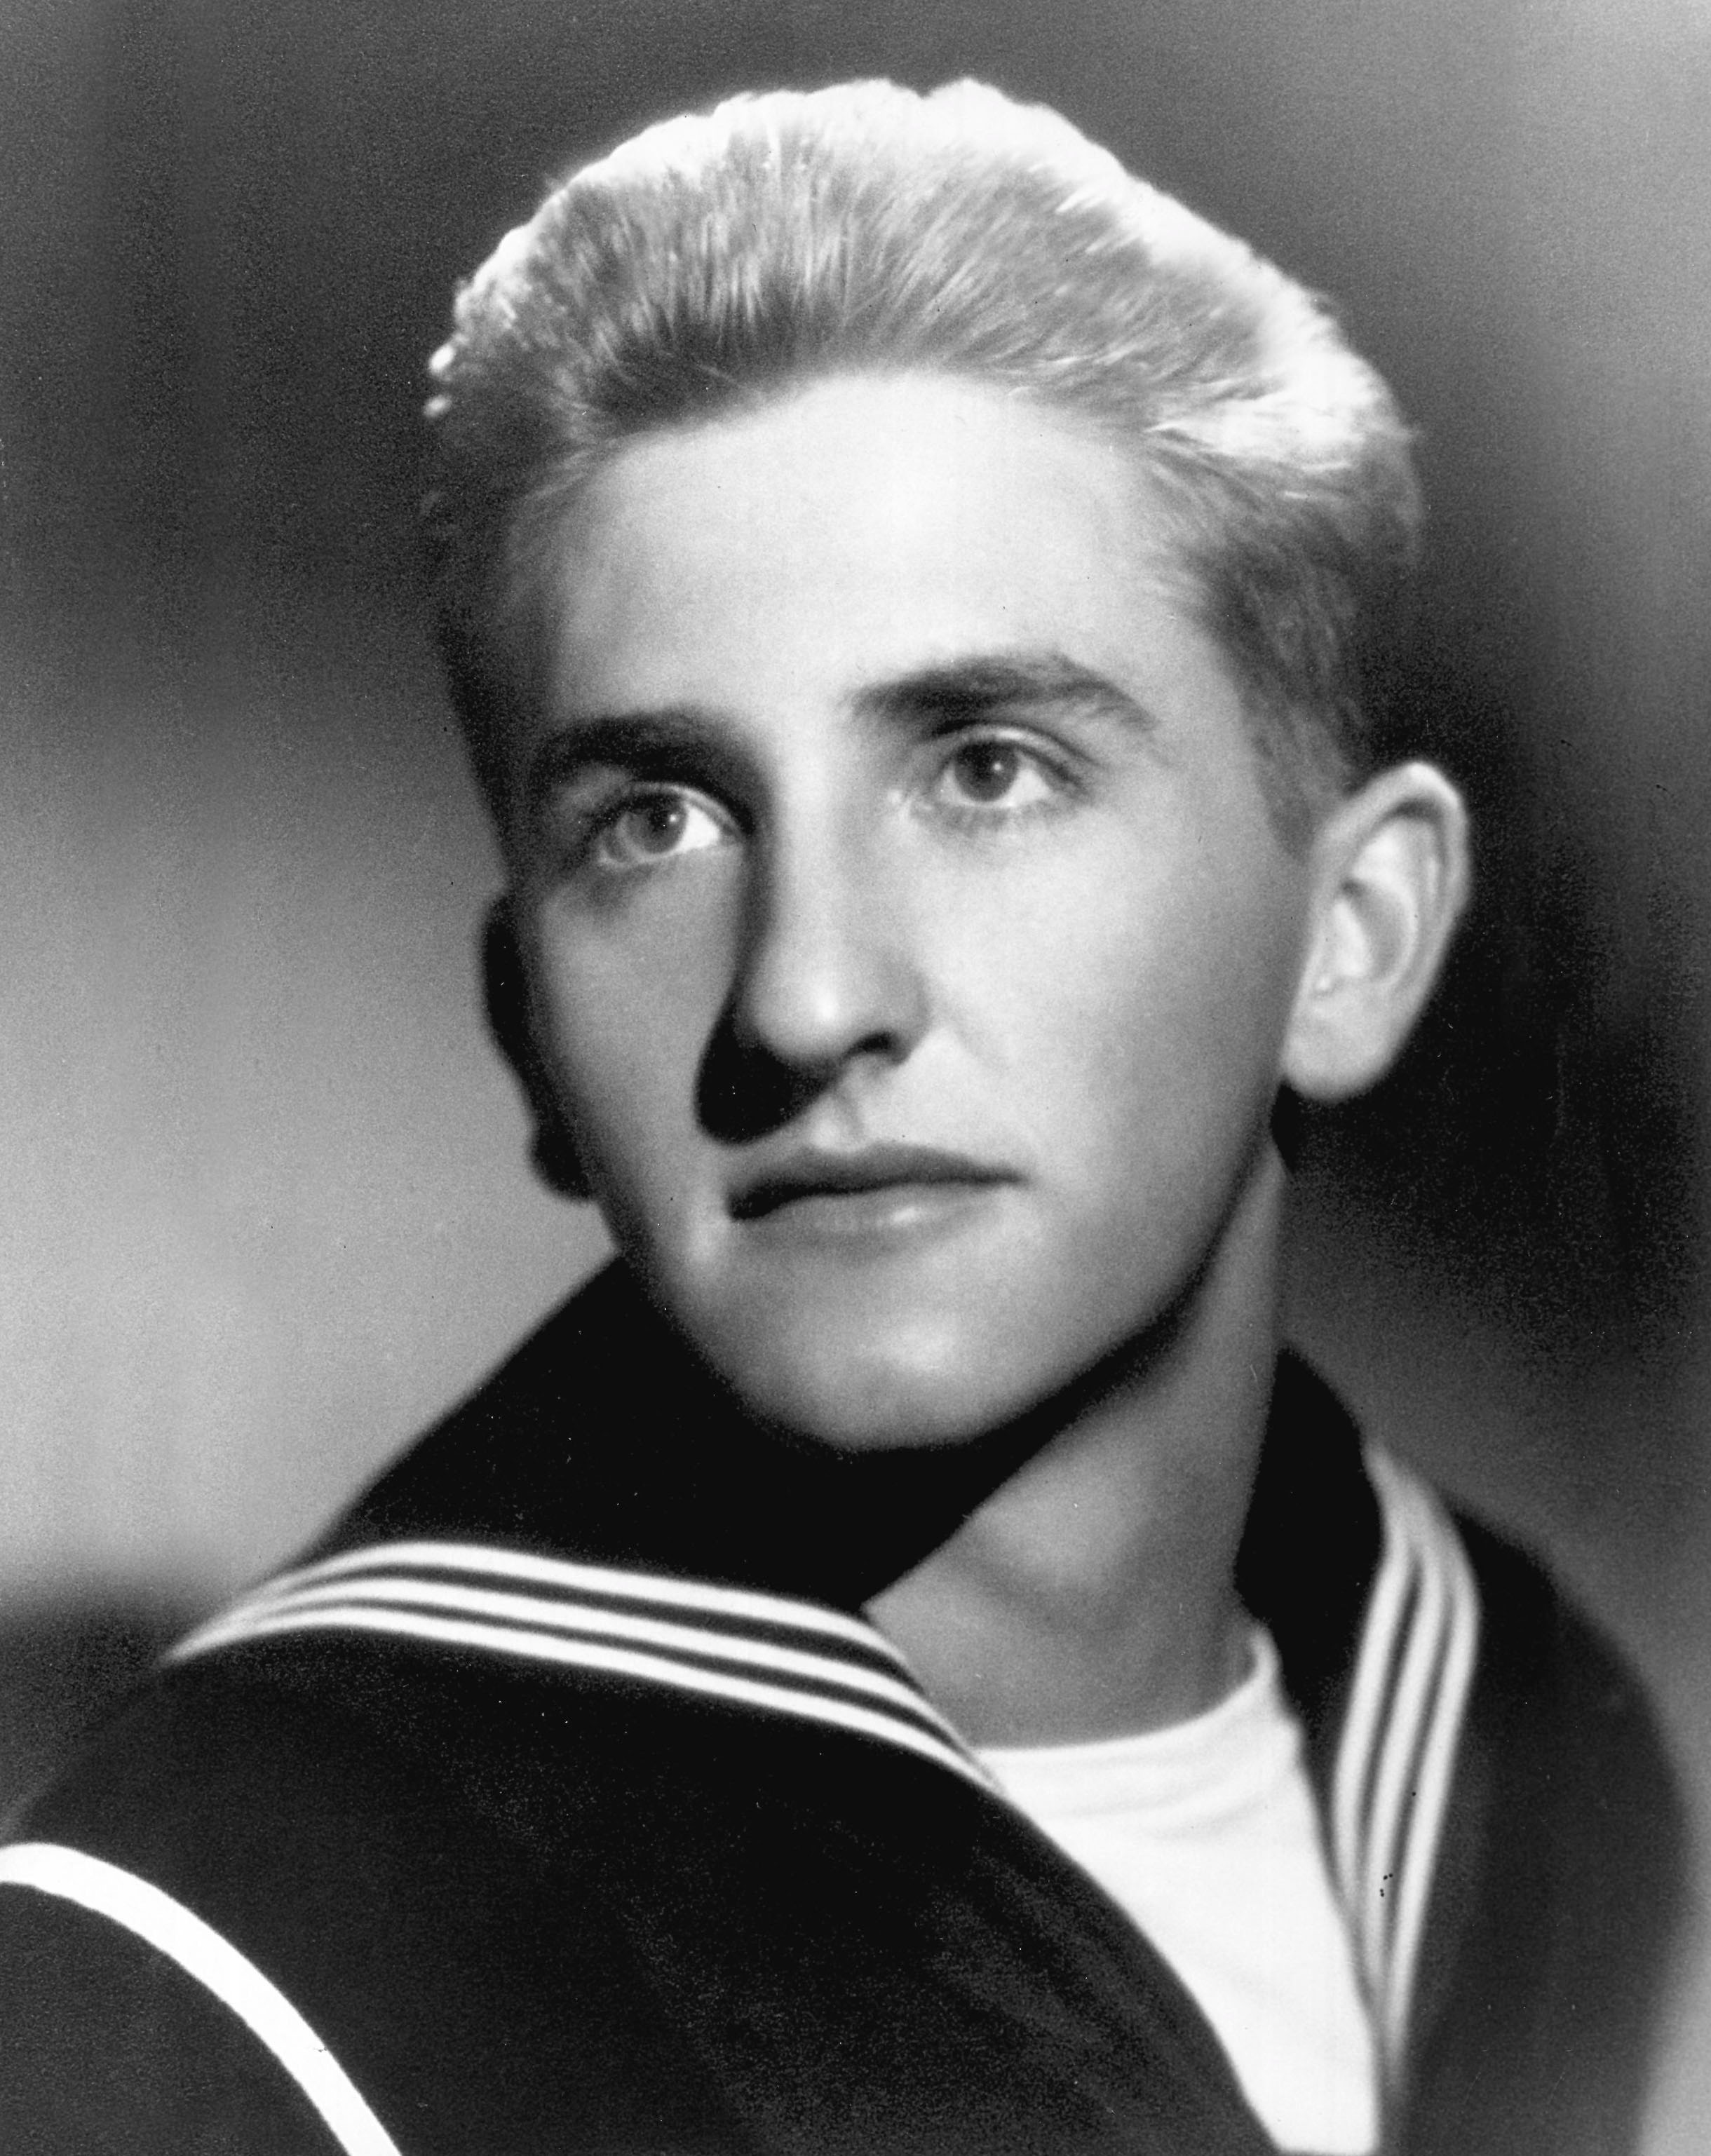 (Photo courtesy LDS Church) Thomas S. Monson served in the Naval Reserve near the close of World War II.